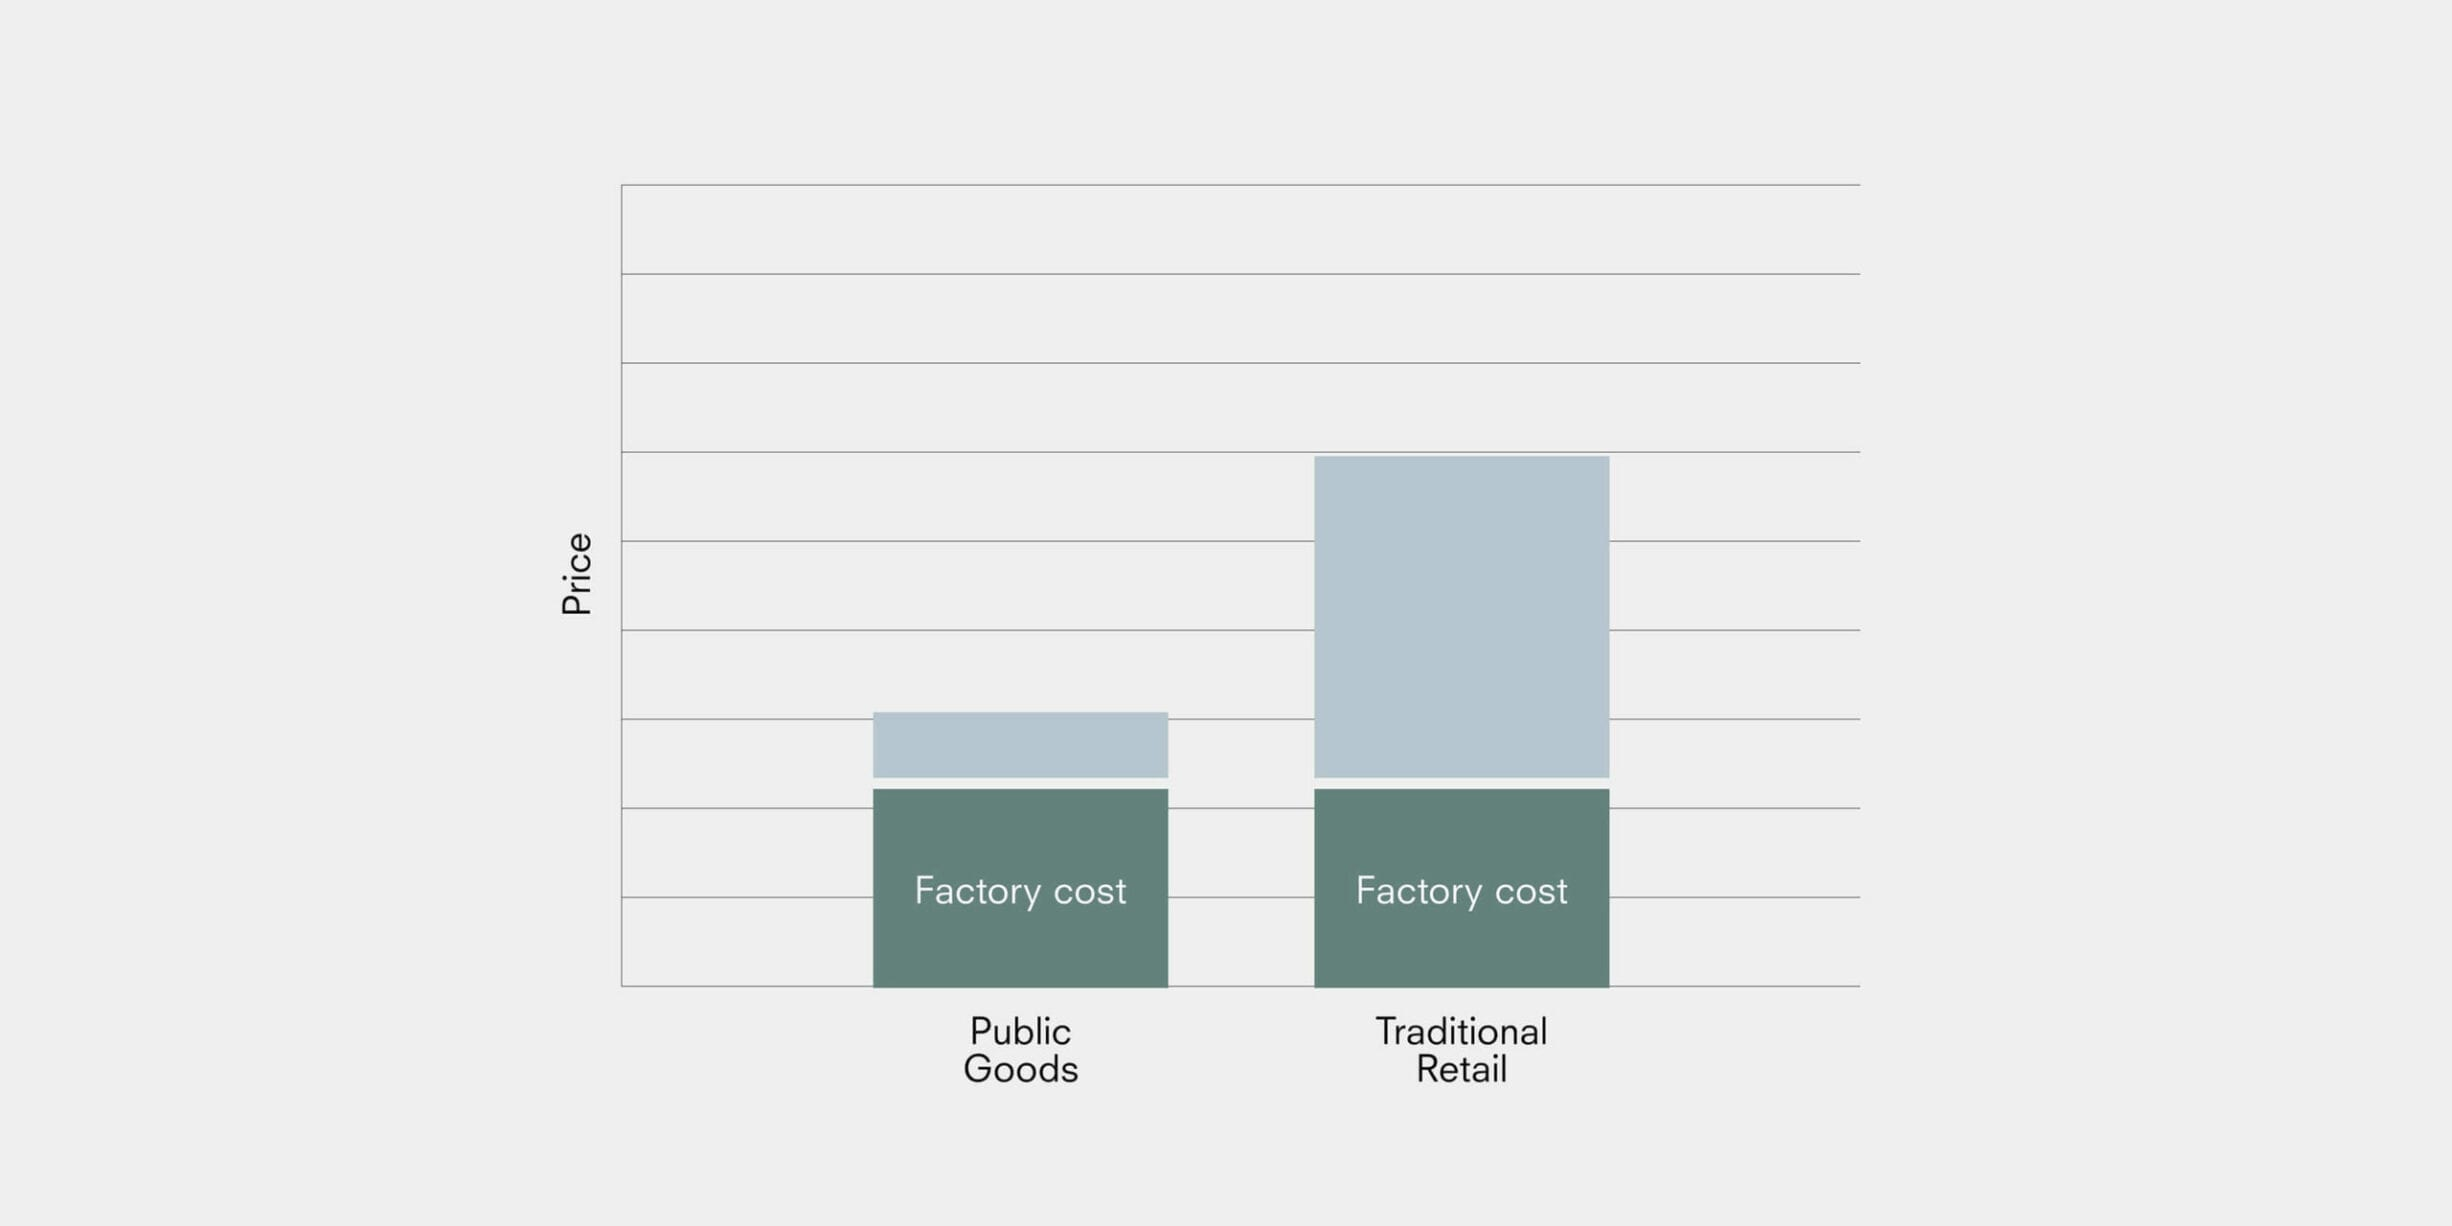 bar graph showing the comparison between public goods and traditional retail